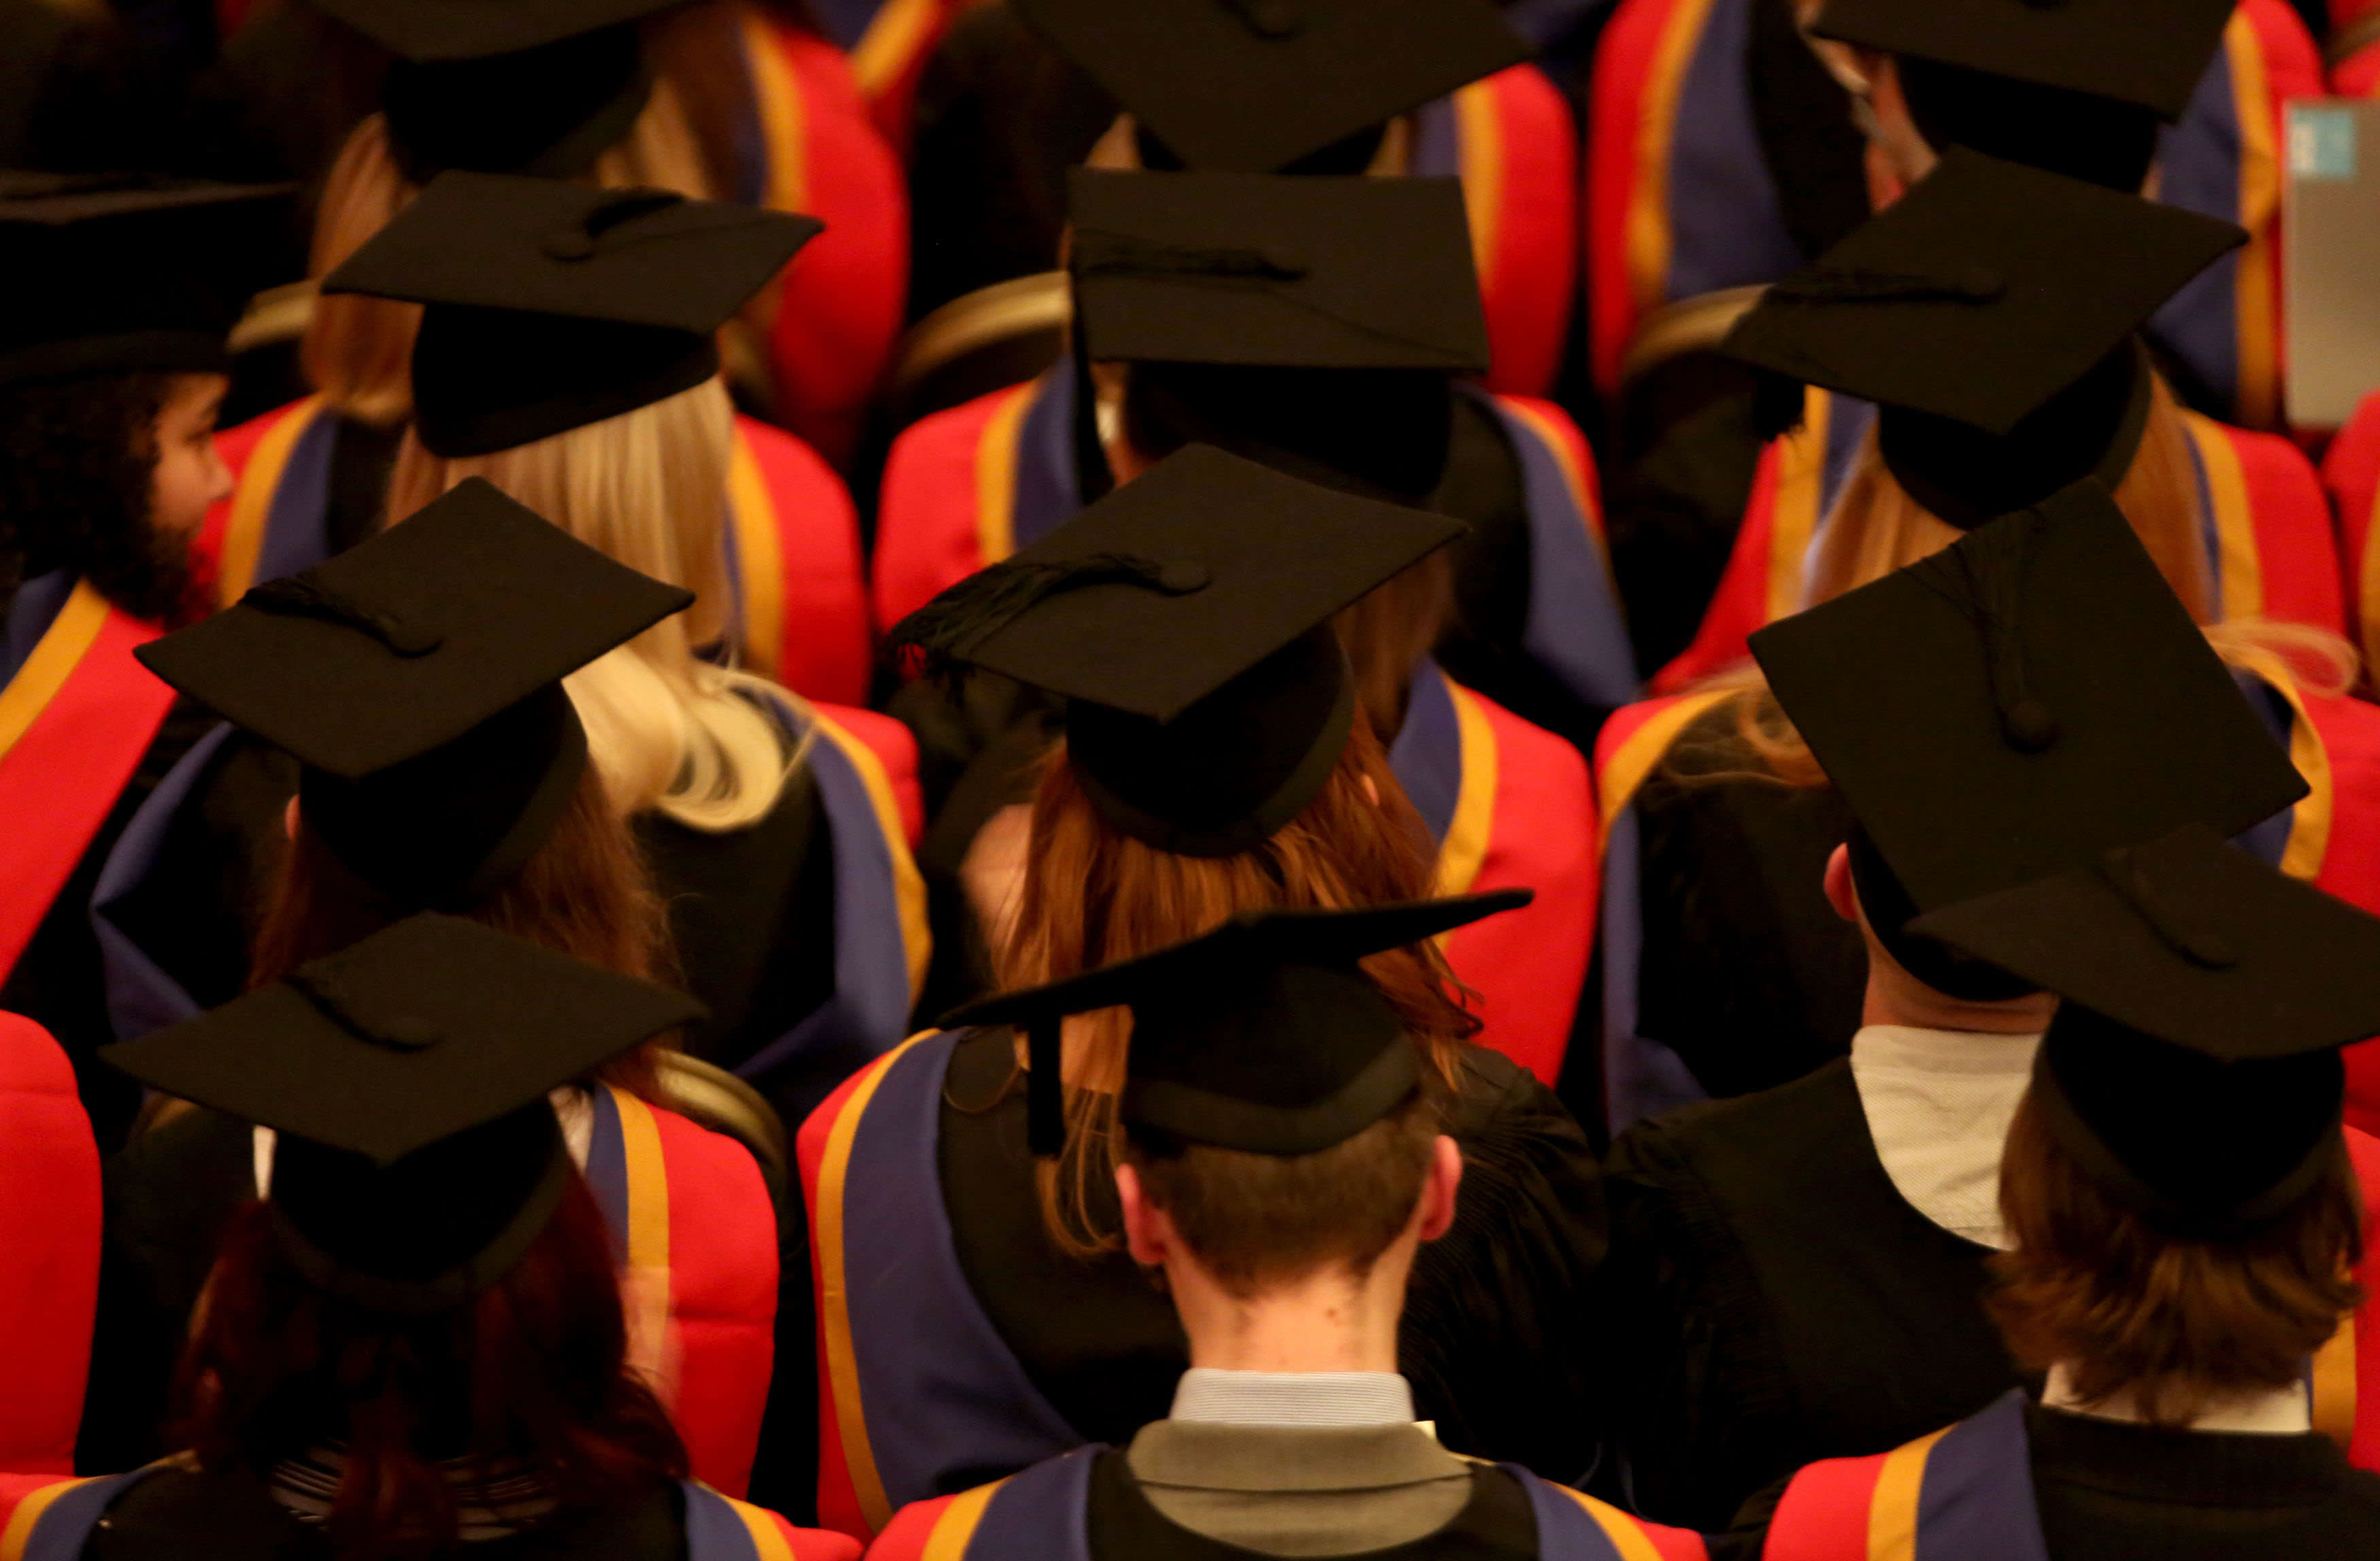 Hybrid advice will lead to higher qualifications, advisers say